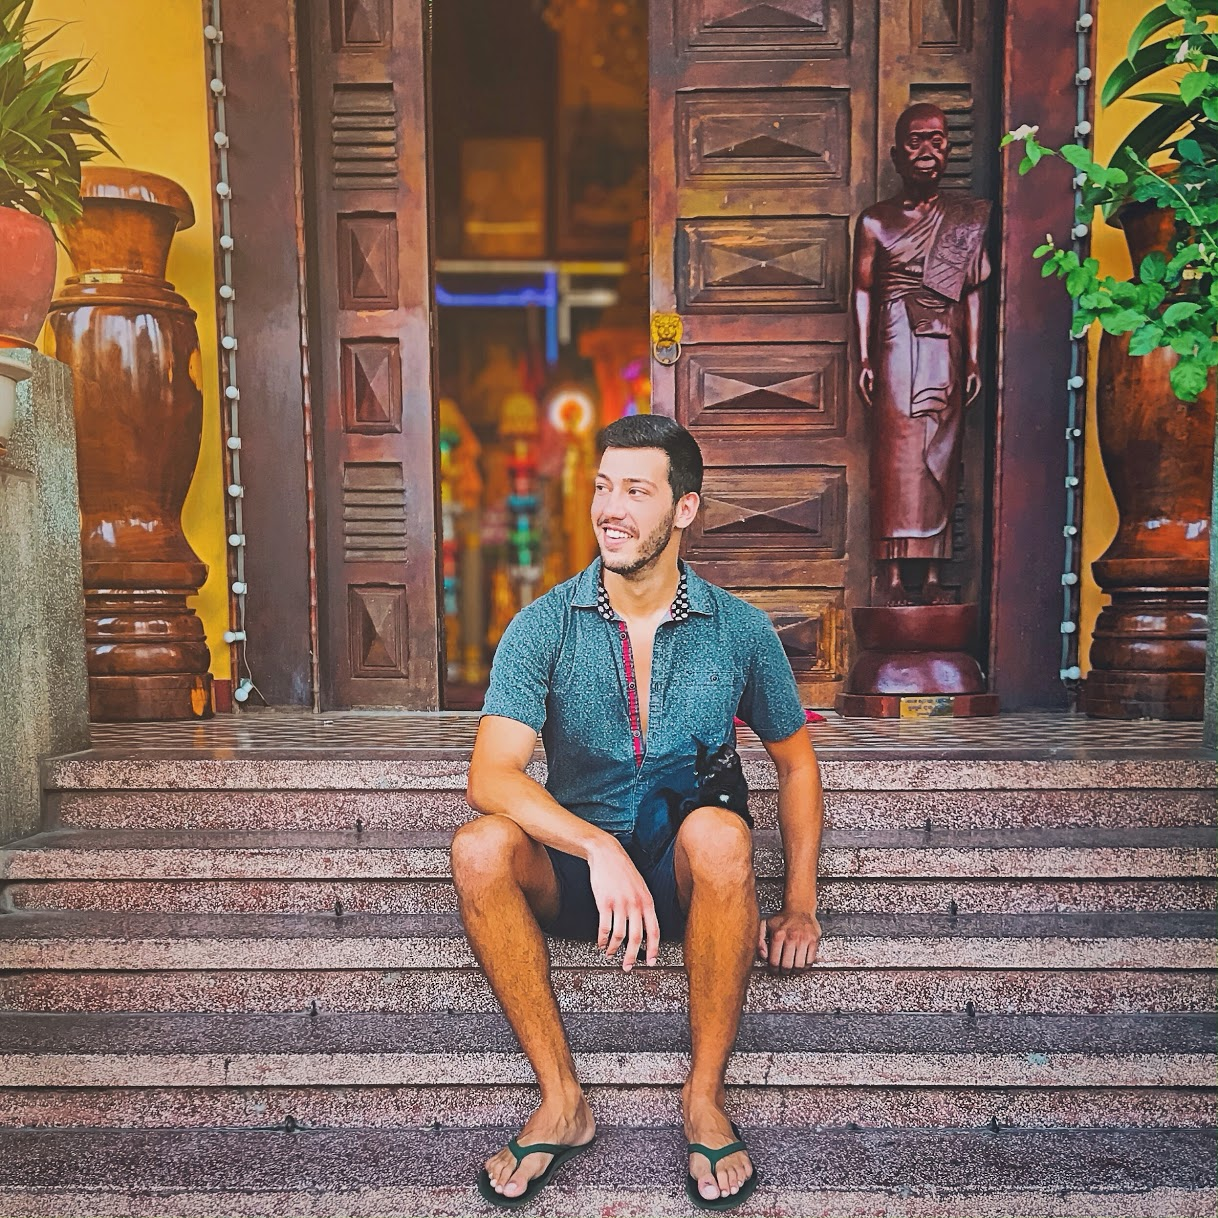 wolfyy.com - authentic, local gay travel information you can rely on